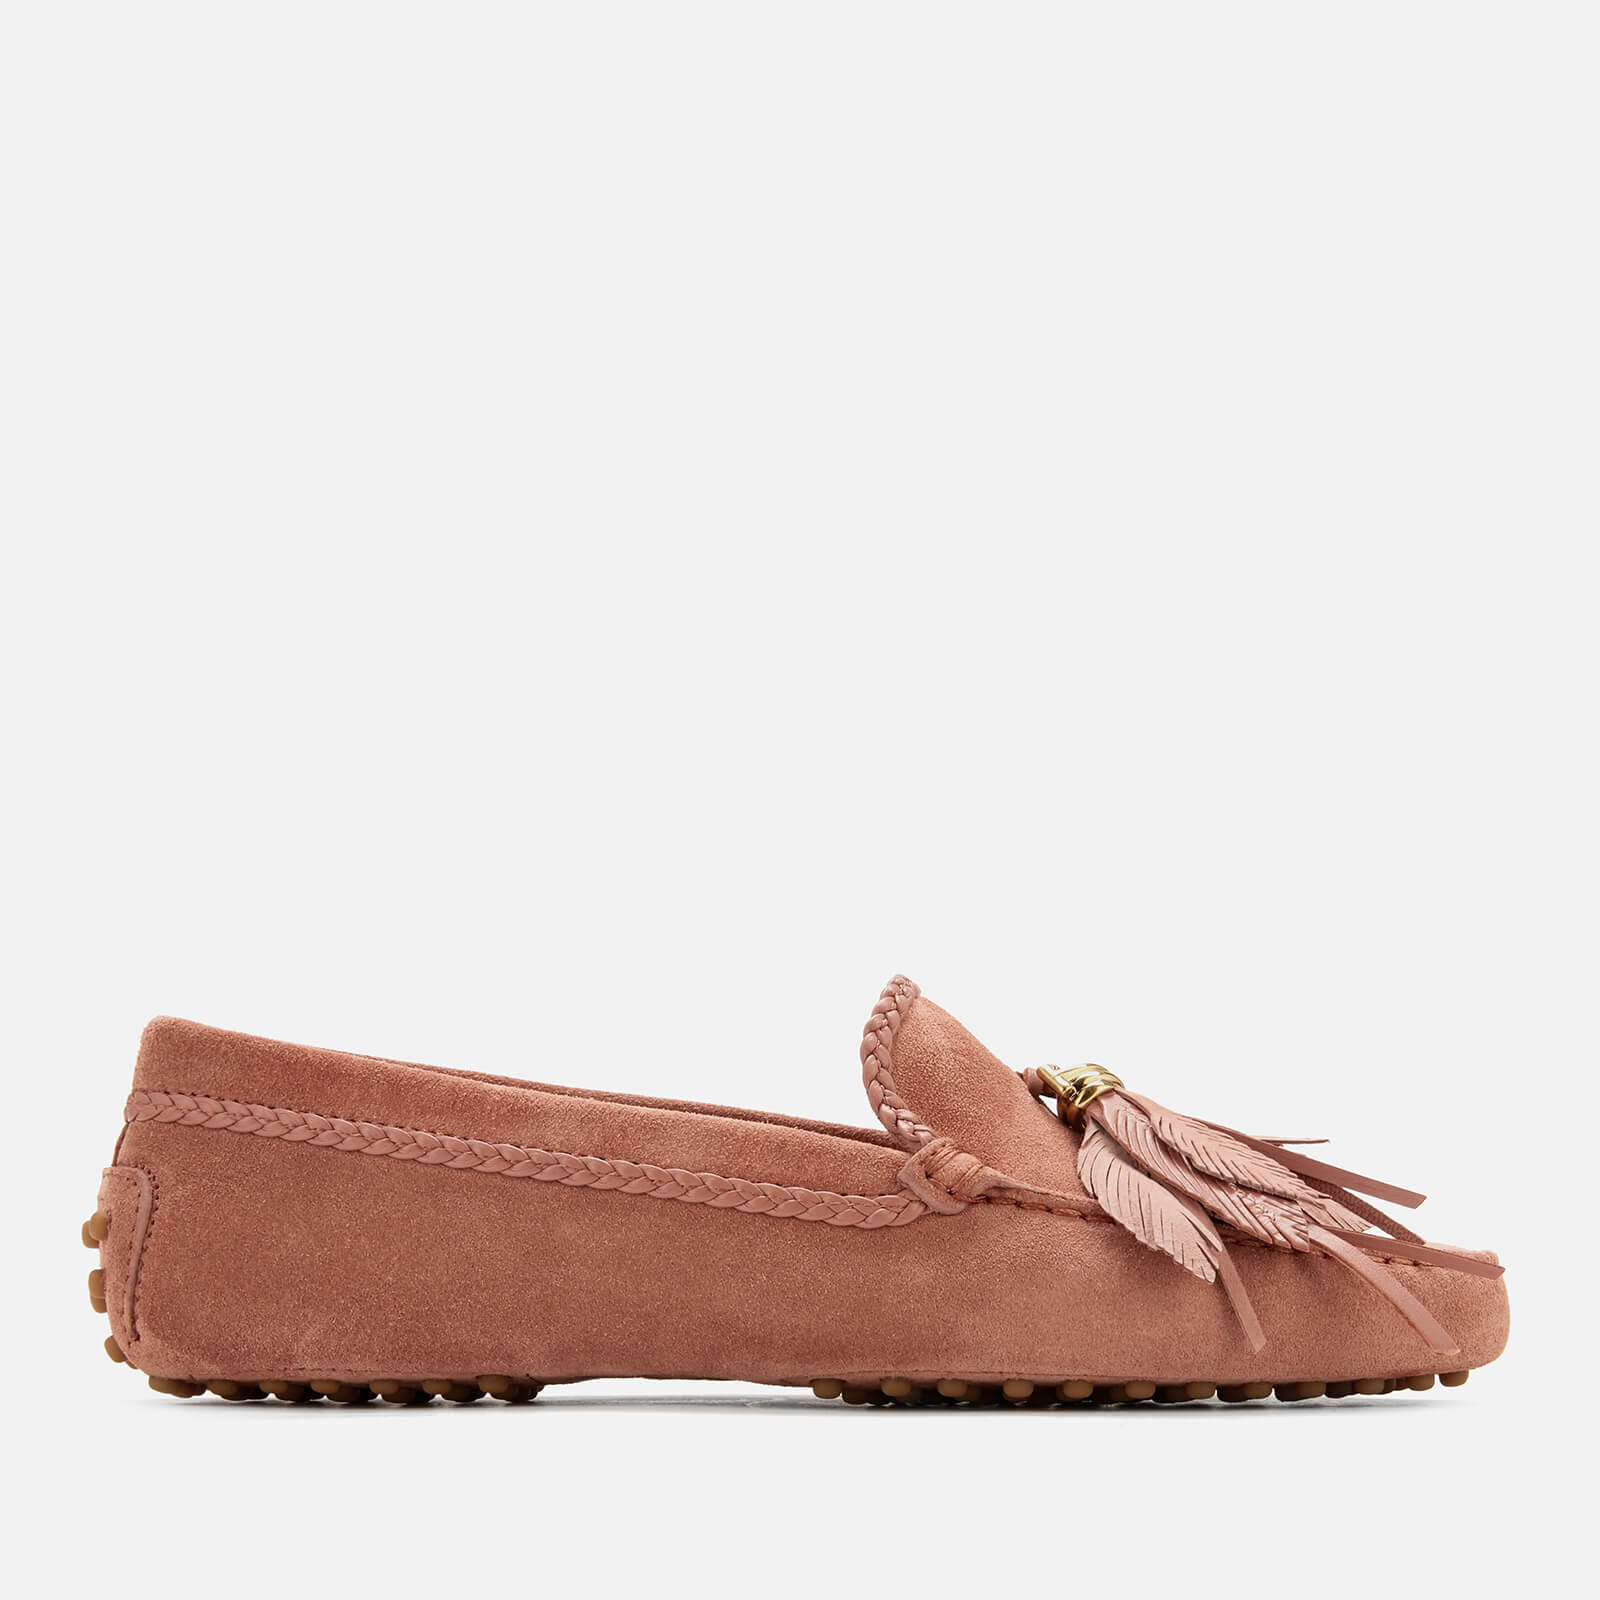 d423552029c Tod s Women s Gommino Feather Moccasin Shoes - Damasco - Free UK Delivery  over £50